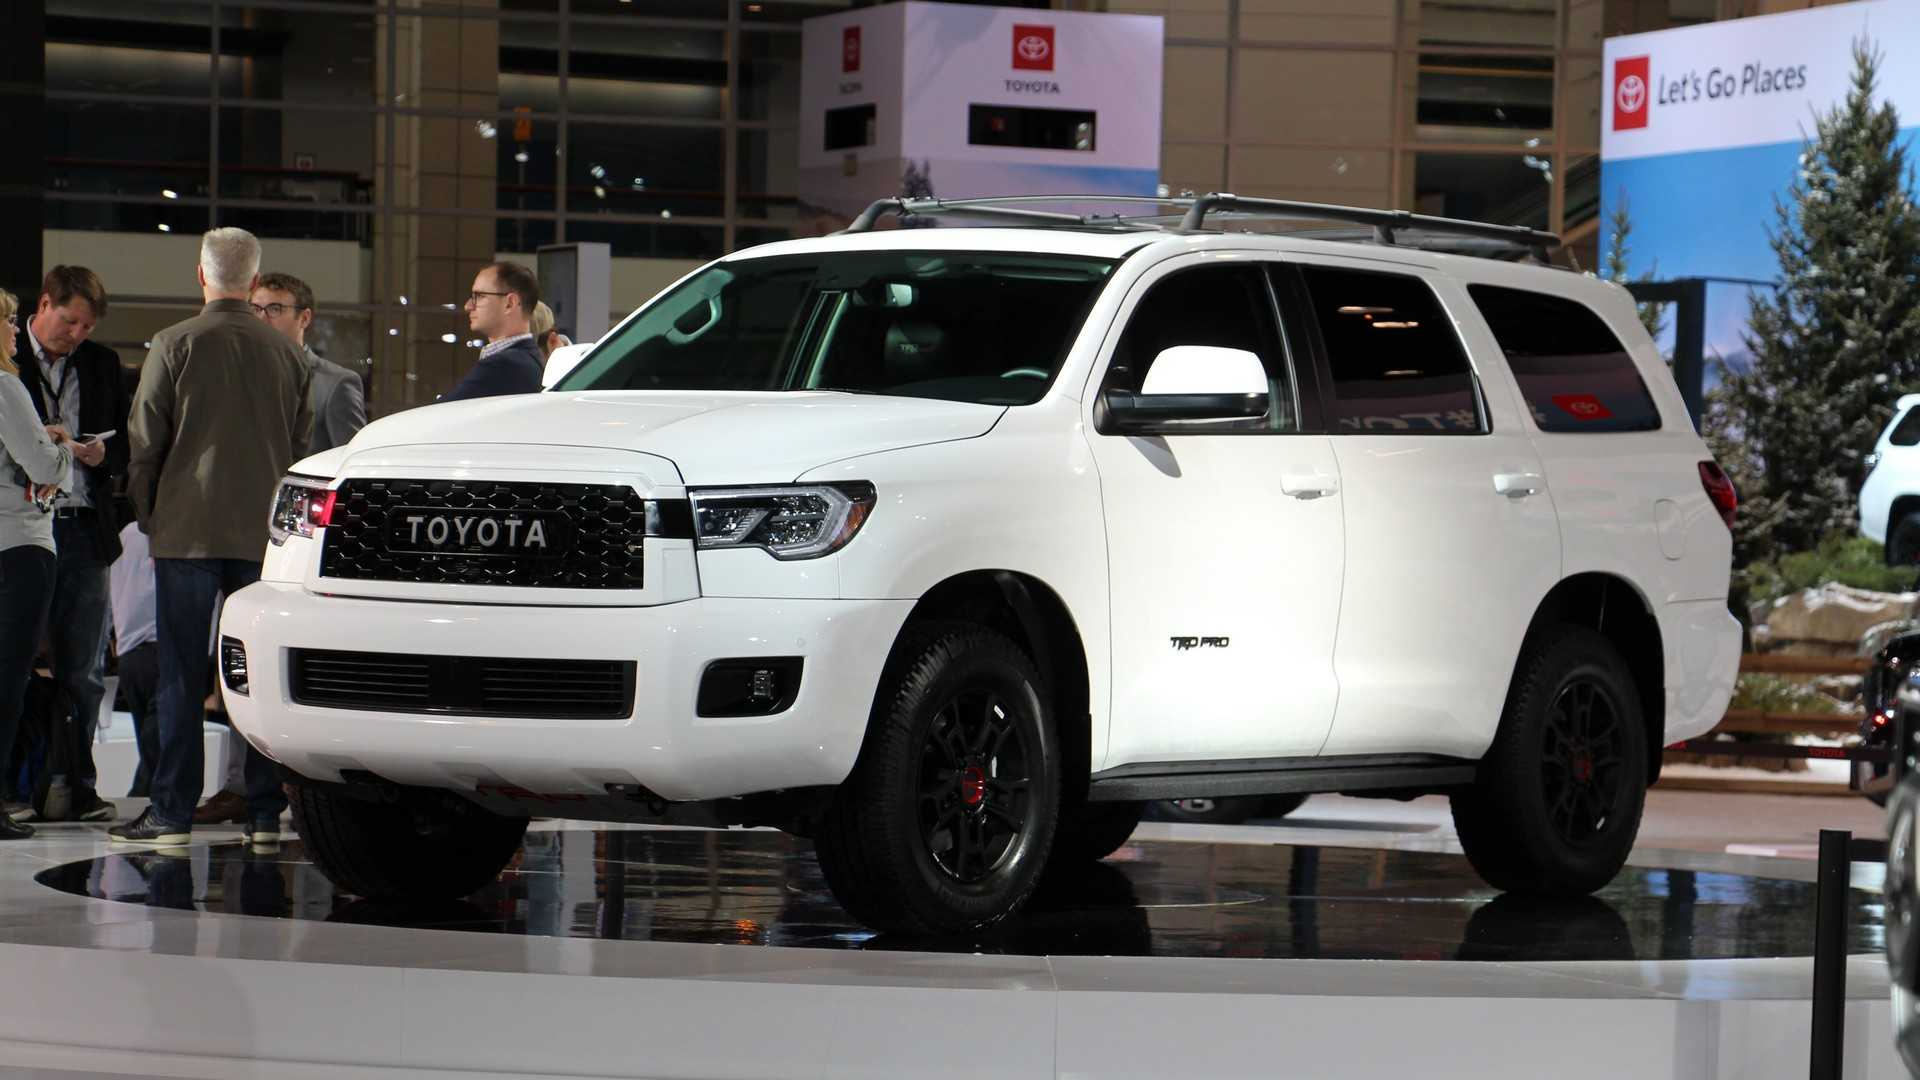 33 The Best 2020 Toyota Sequoia Spy Photos Speed Test